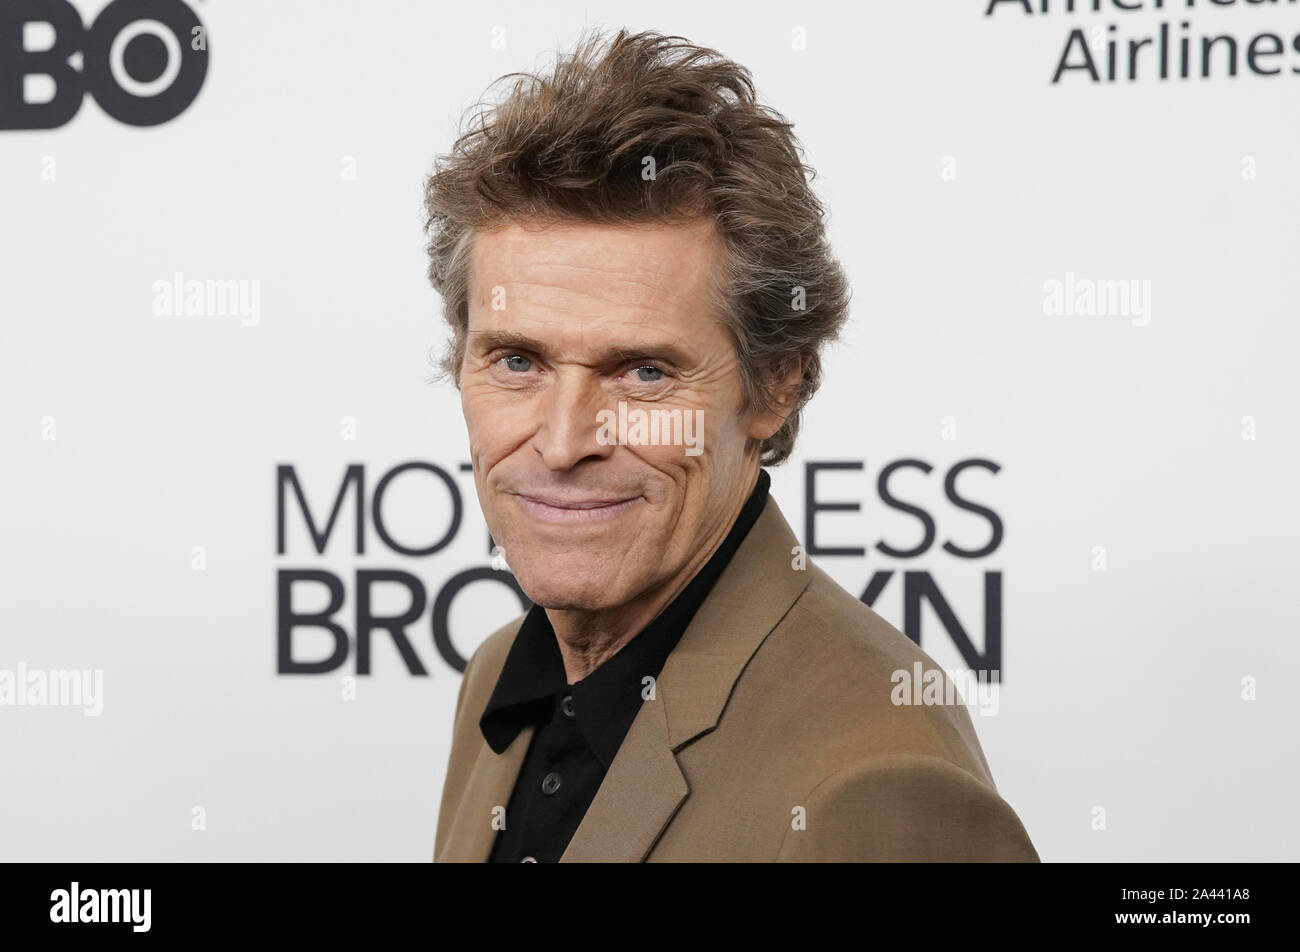 """New York, United States. 11th Oct, 2019. Willem Dafoe arrives on the red carpet at the """"Motherless Brooklyn"""" premiere during the 57th New York Film Festival in New York City on Friday, October 11, 2019. Photo by John Angelillo/UPI Credit: UPI/Alamy Live News Stock Photo"""